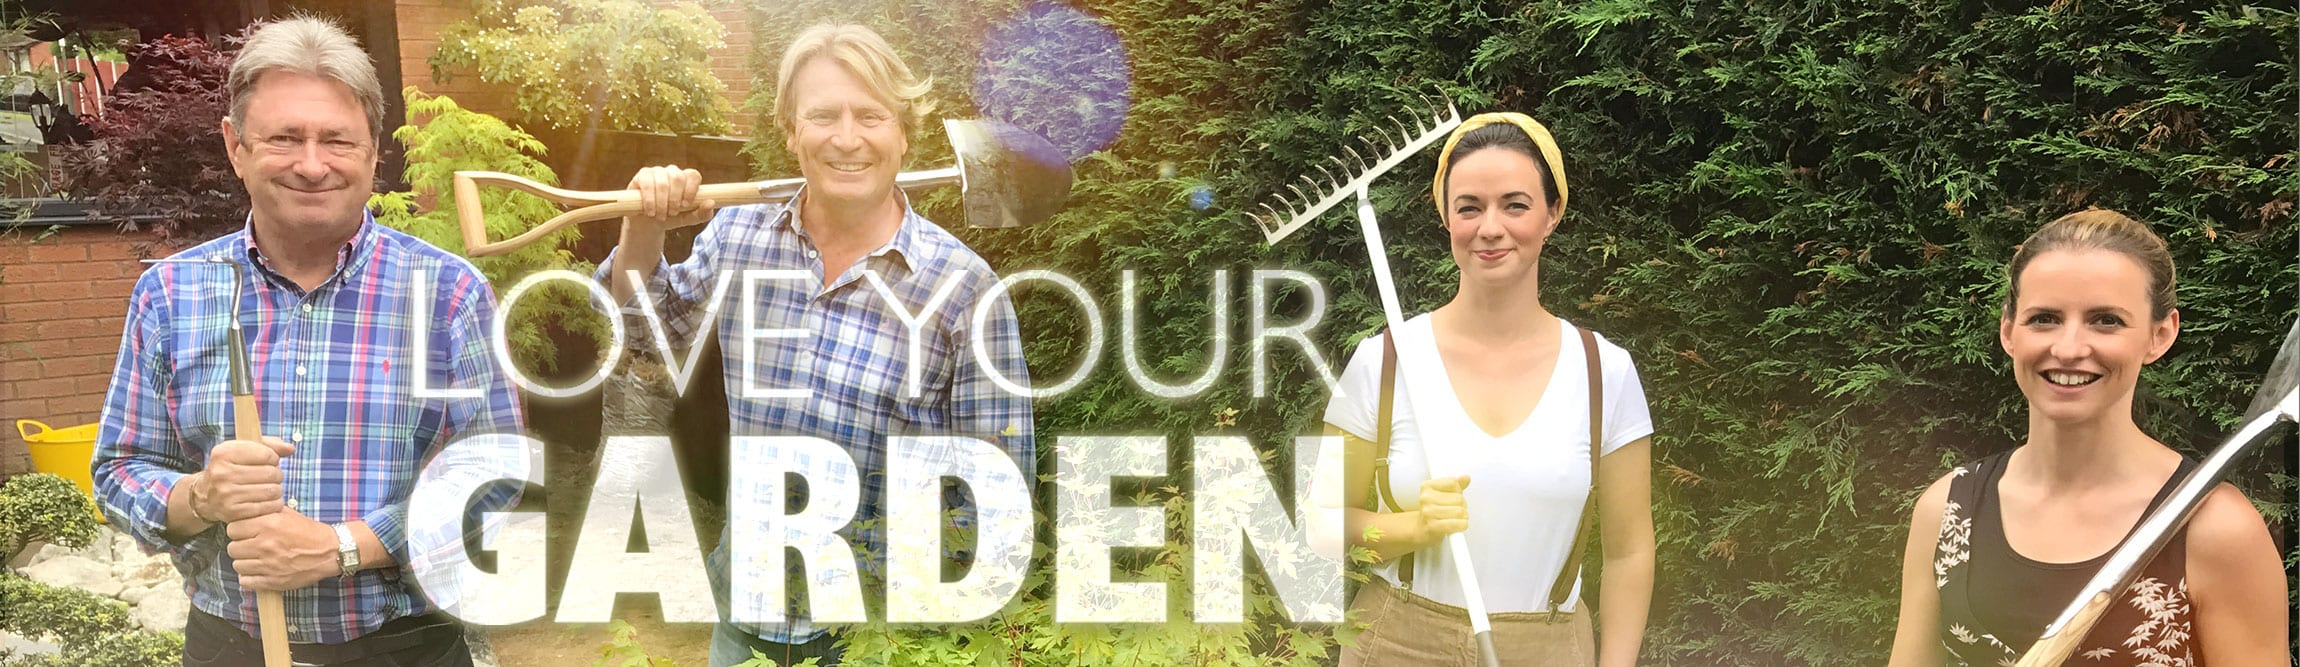 Love your garden presenters Alan Titchmarsh David Domoney Frances Tophill Katie Rushworth